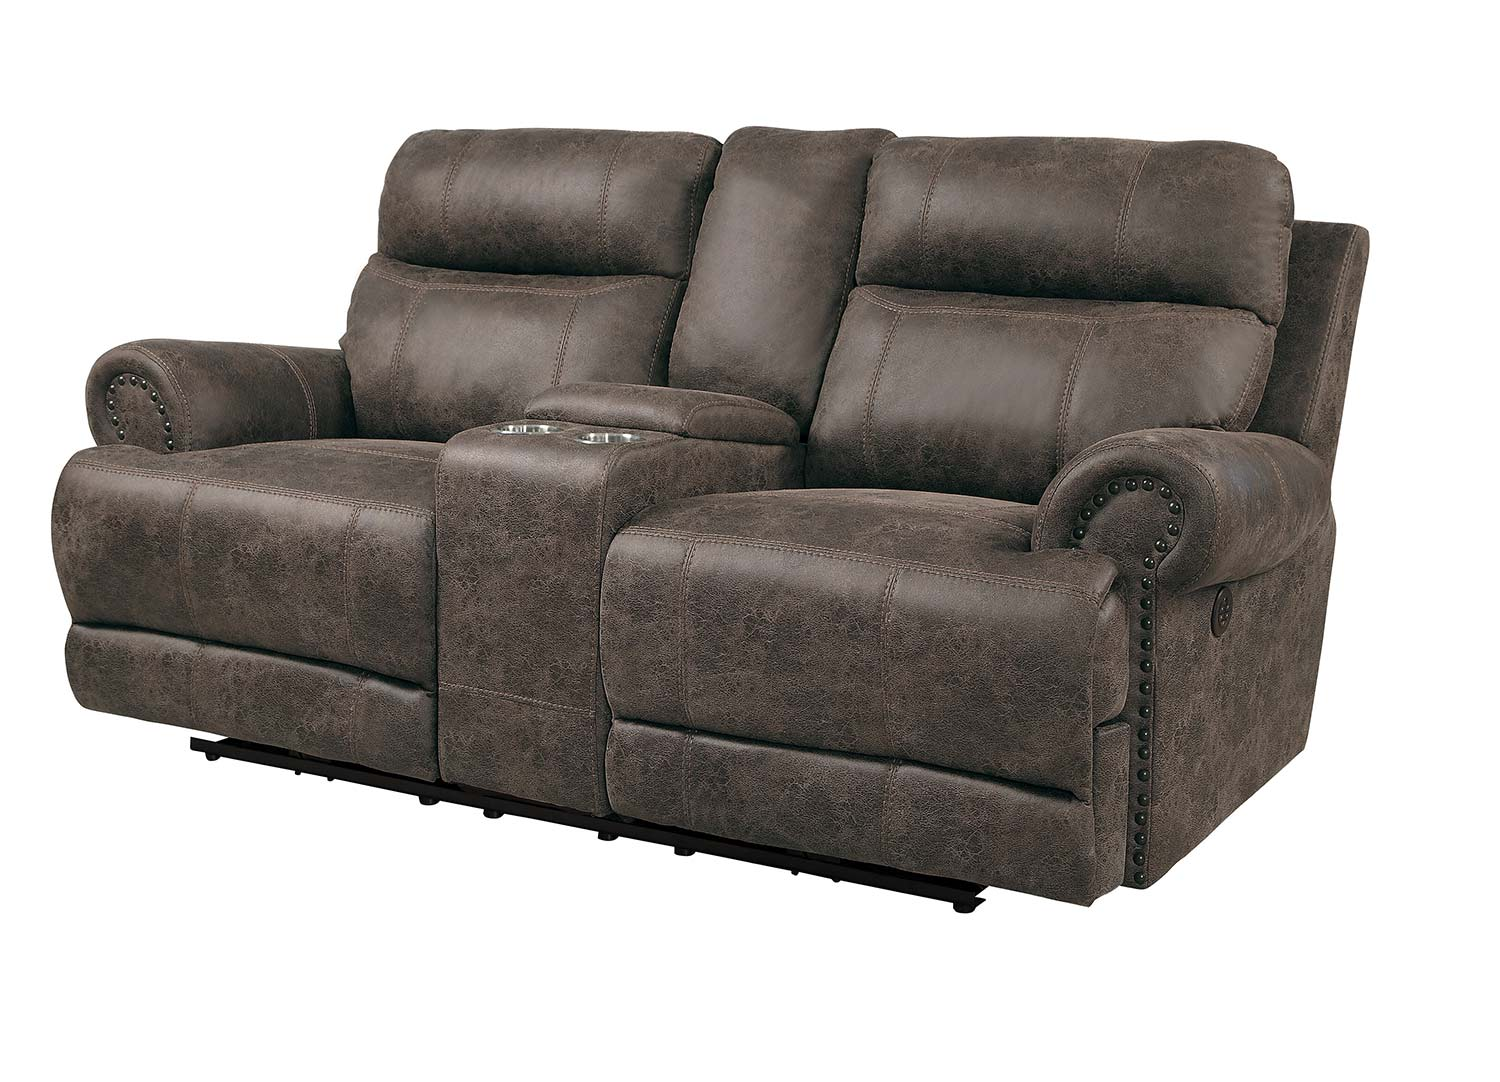 Homelegance Aggiano Power Double Reclining Love Seat With Power Headrests - Dark Brown